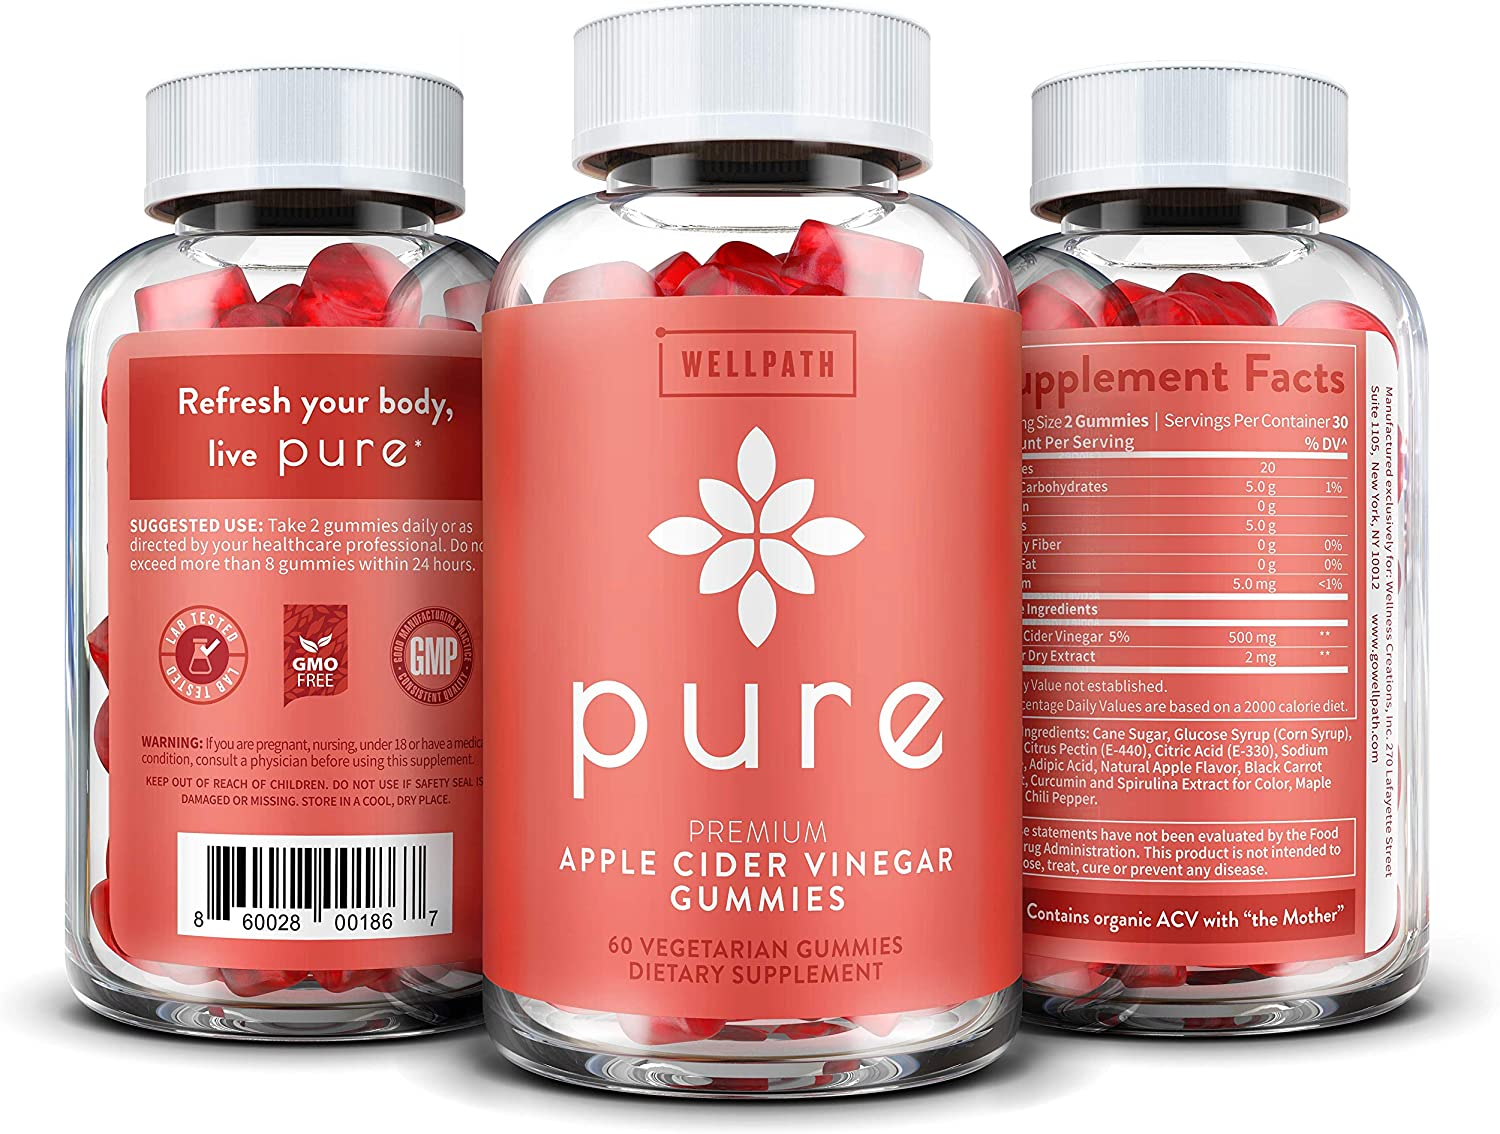 Pure Apple Cider Vinegar Gummies - with Raw, Organic, Unfiltered ACV from the Mother - Gummy Alternative to Apple Cider Vinegar Capsules, Pills, Tablets - Detox, Cleanse Support, Immunity -60 capsules